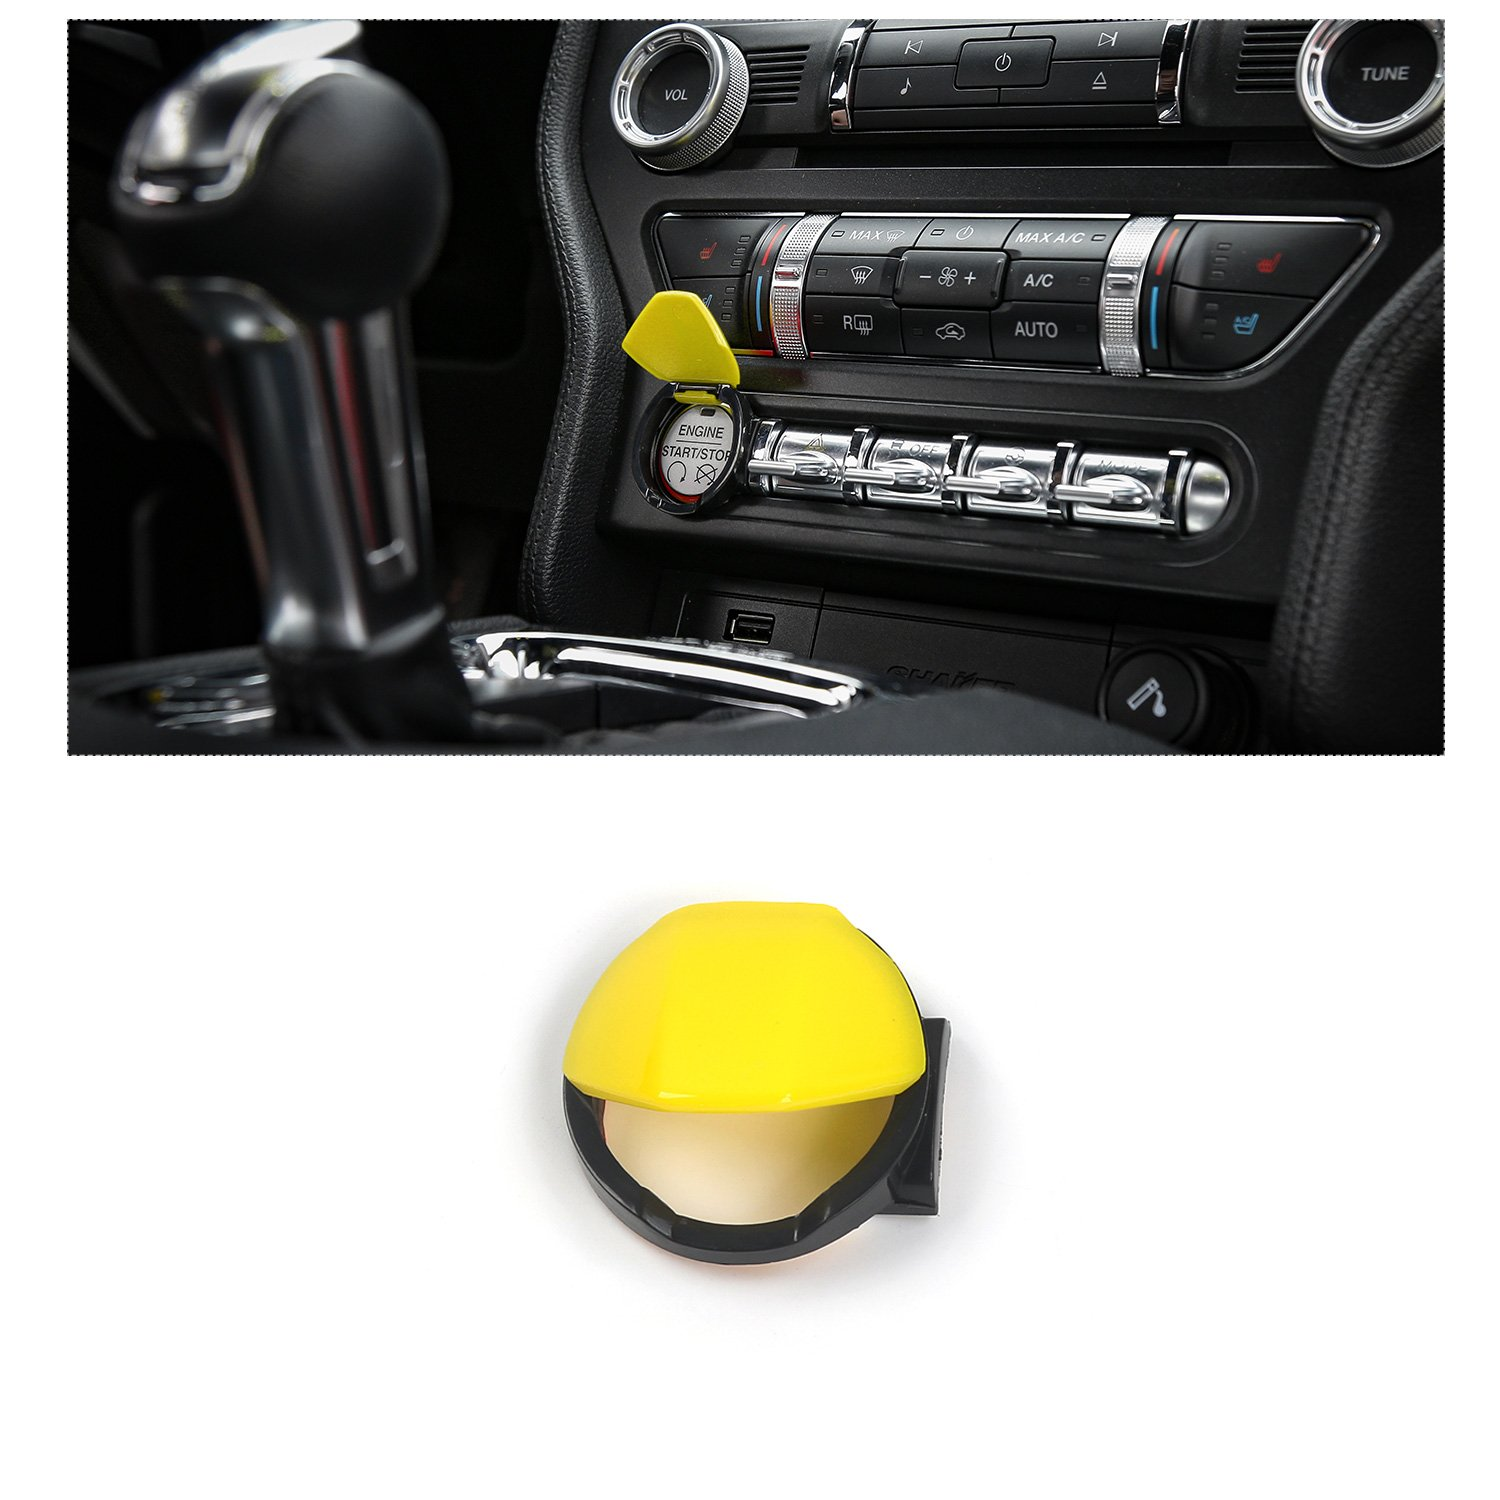 co-pilot位置ストレージボックススイッチボタンカバートリムfor Ford Mustang 2015 Up Engine Start/Stop Button Cover Trim イエロー RT-YM-01yellow B07BDJVDHR Engine Start/Stop Button Cover Trim|イエロー イエロー Engine Start/Stop Button Cover Trim